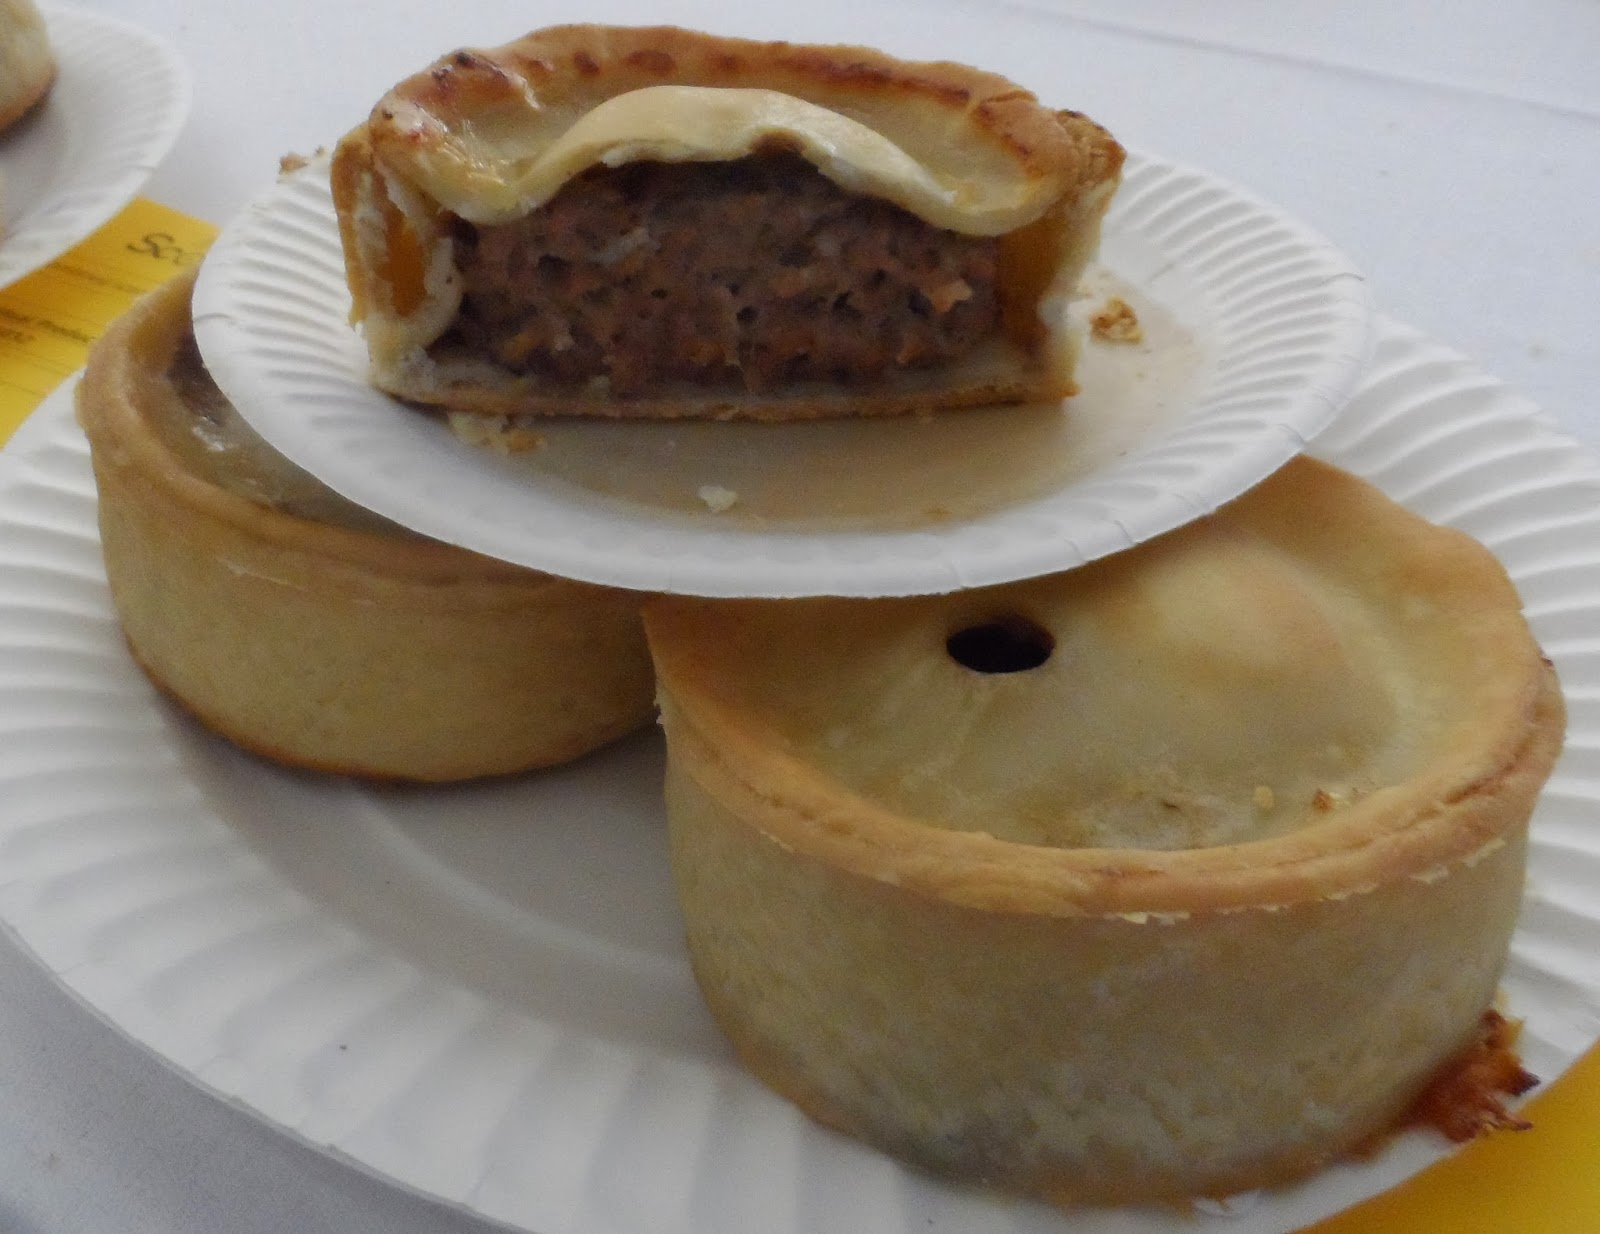 Scotch Pie Club Awards Pie Review